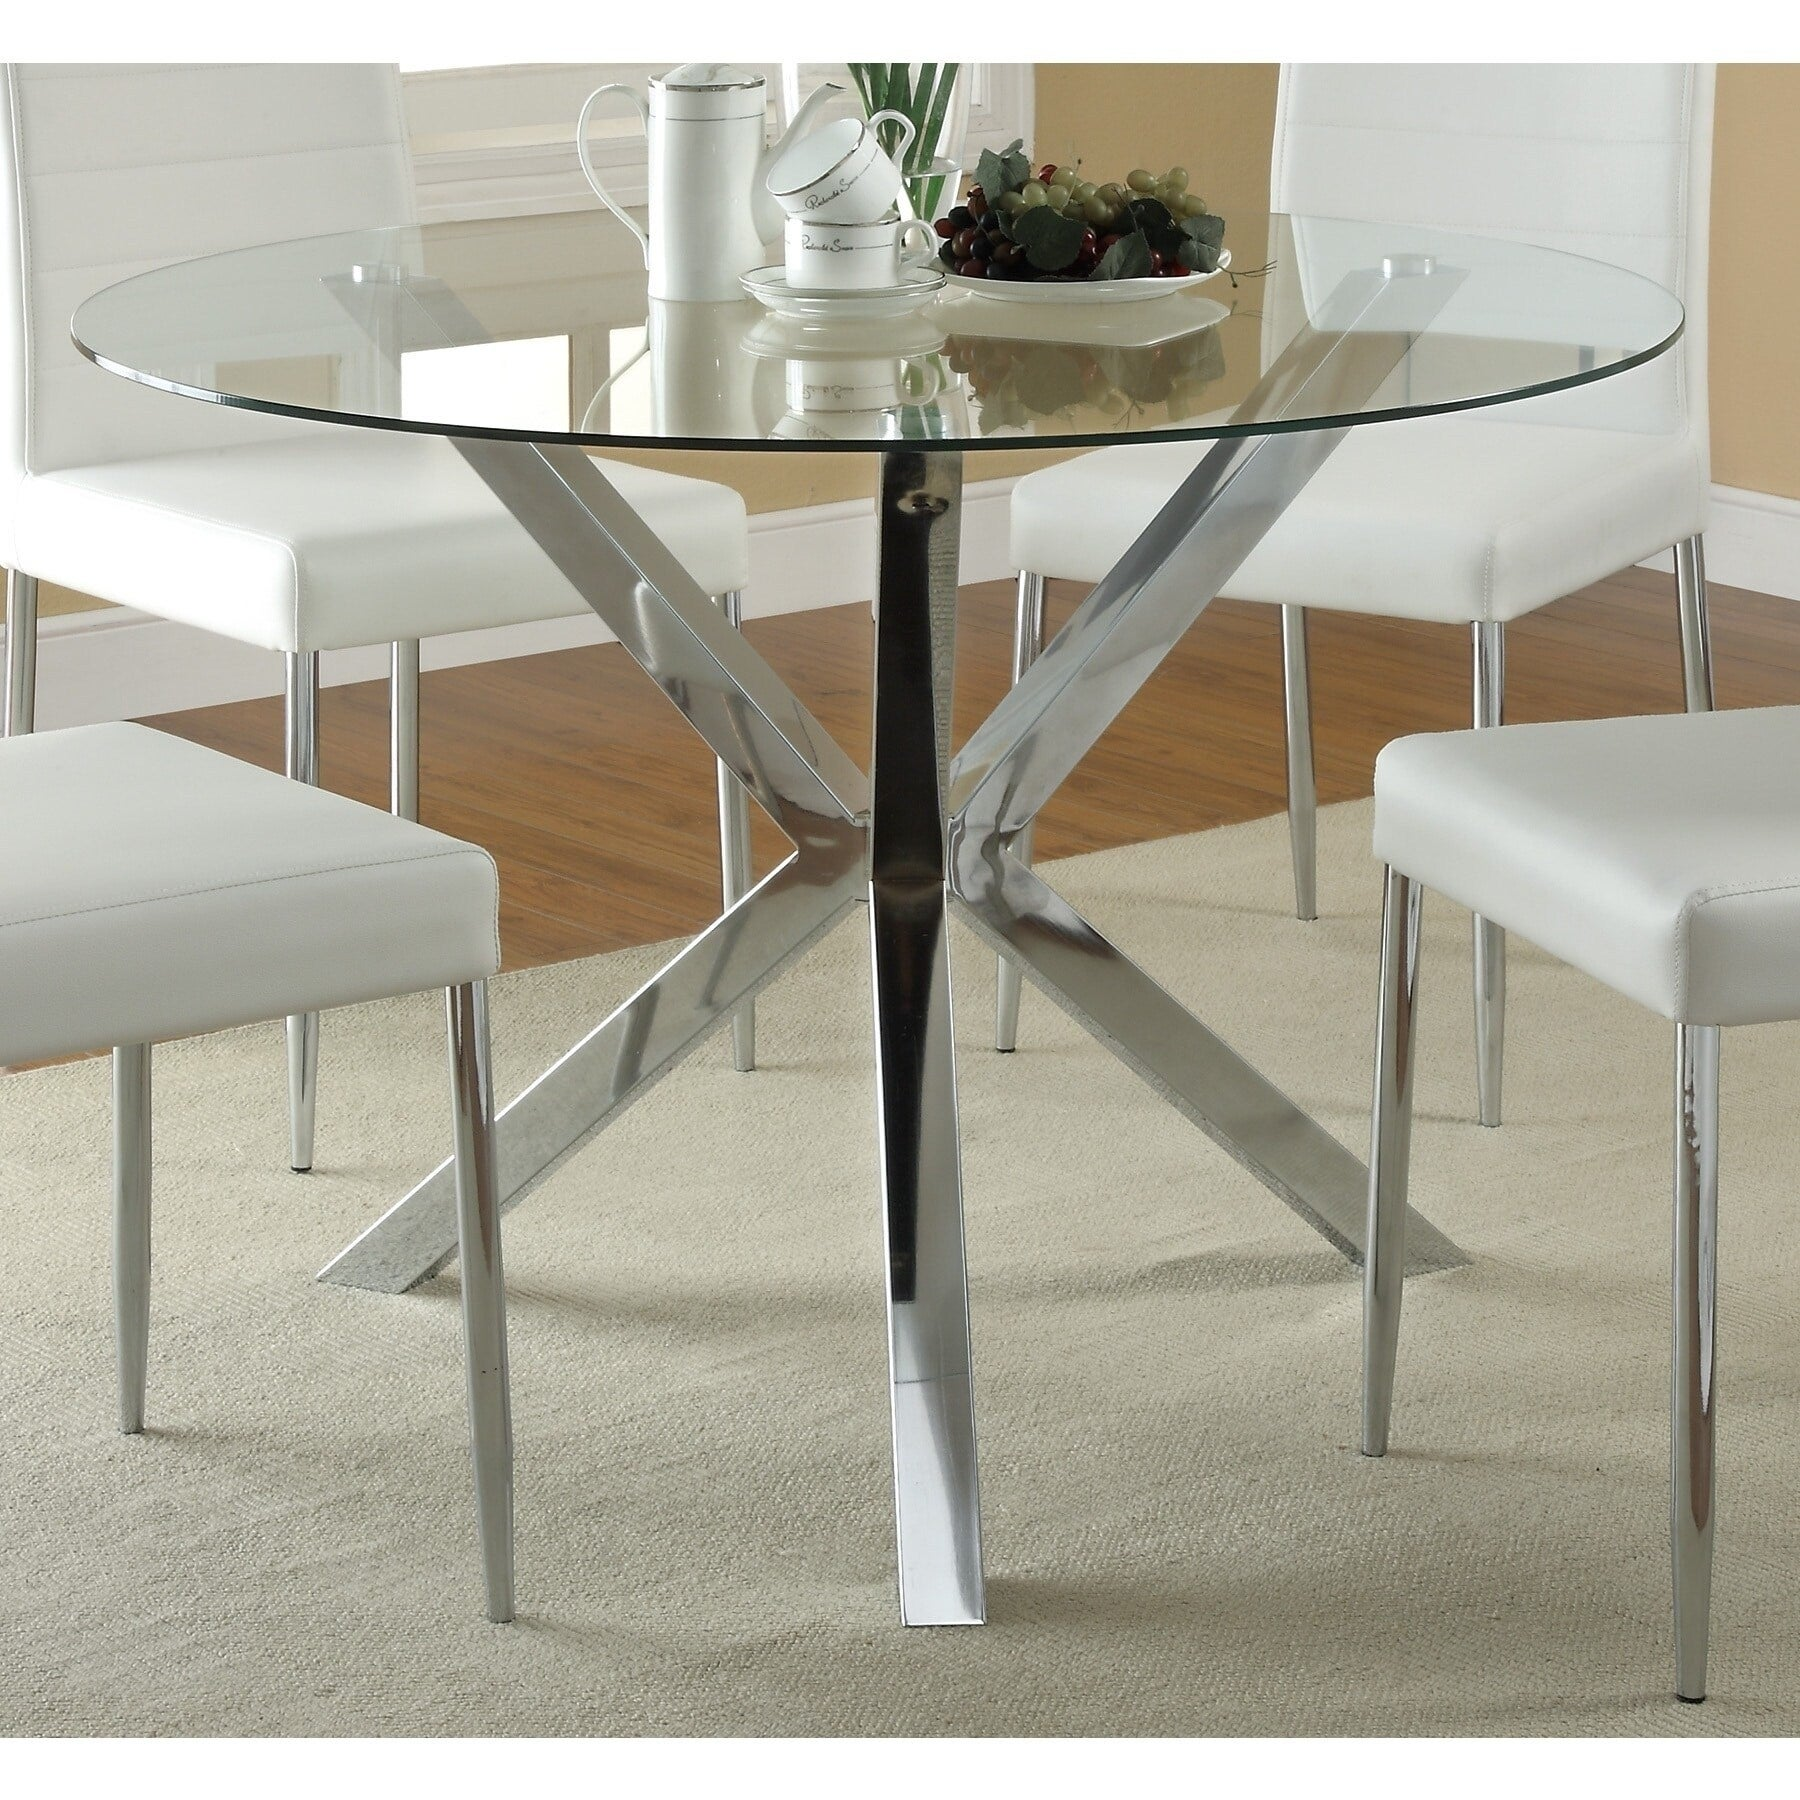 Coaster Company Chrome Glass Top Dining Table 30 X 41 25 On Sale Overstock 12344846